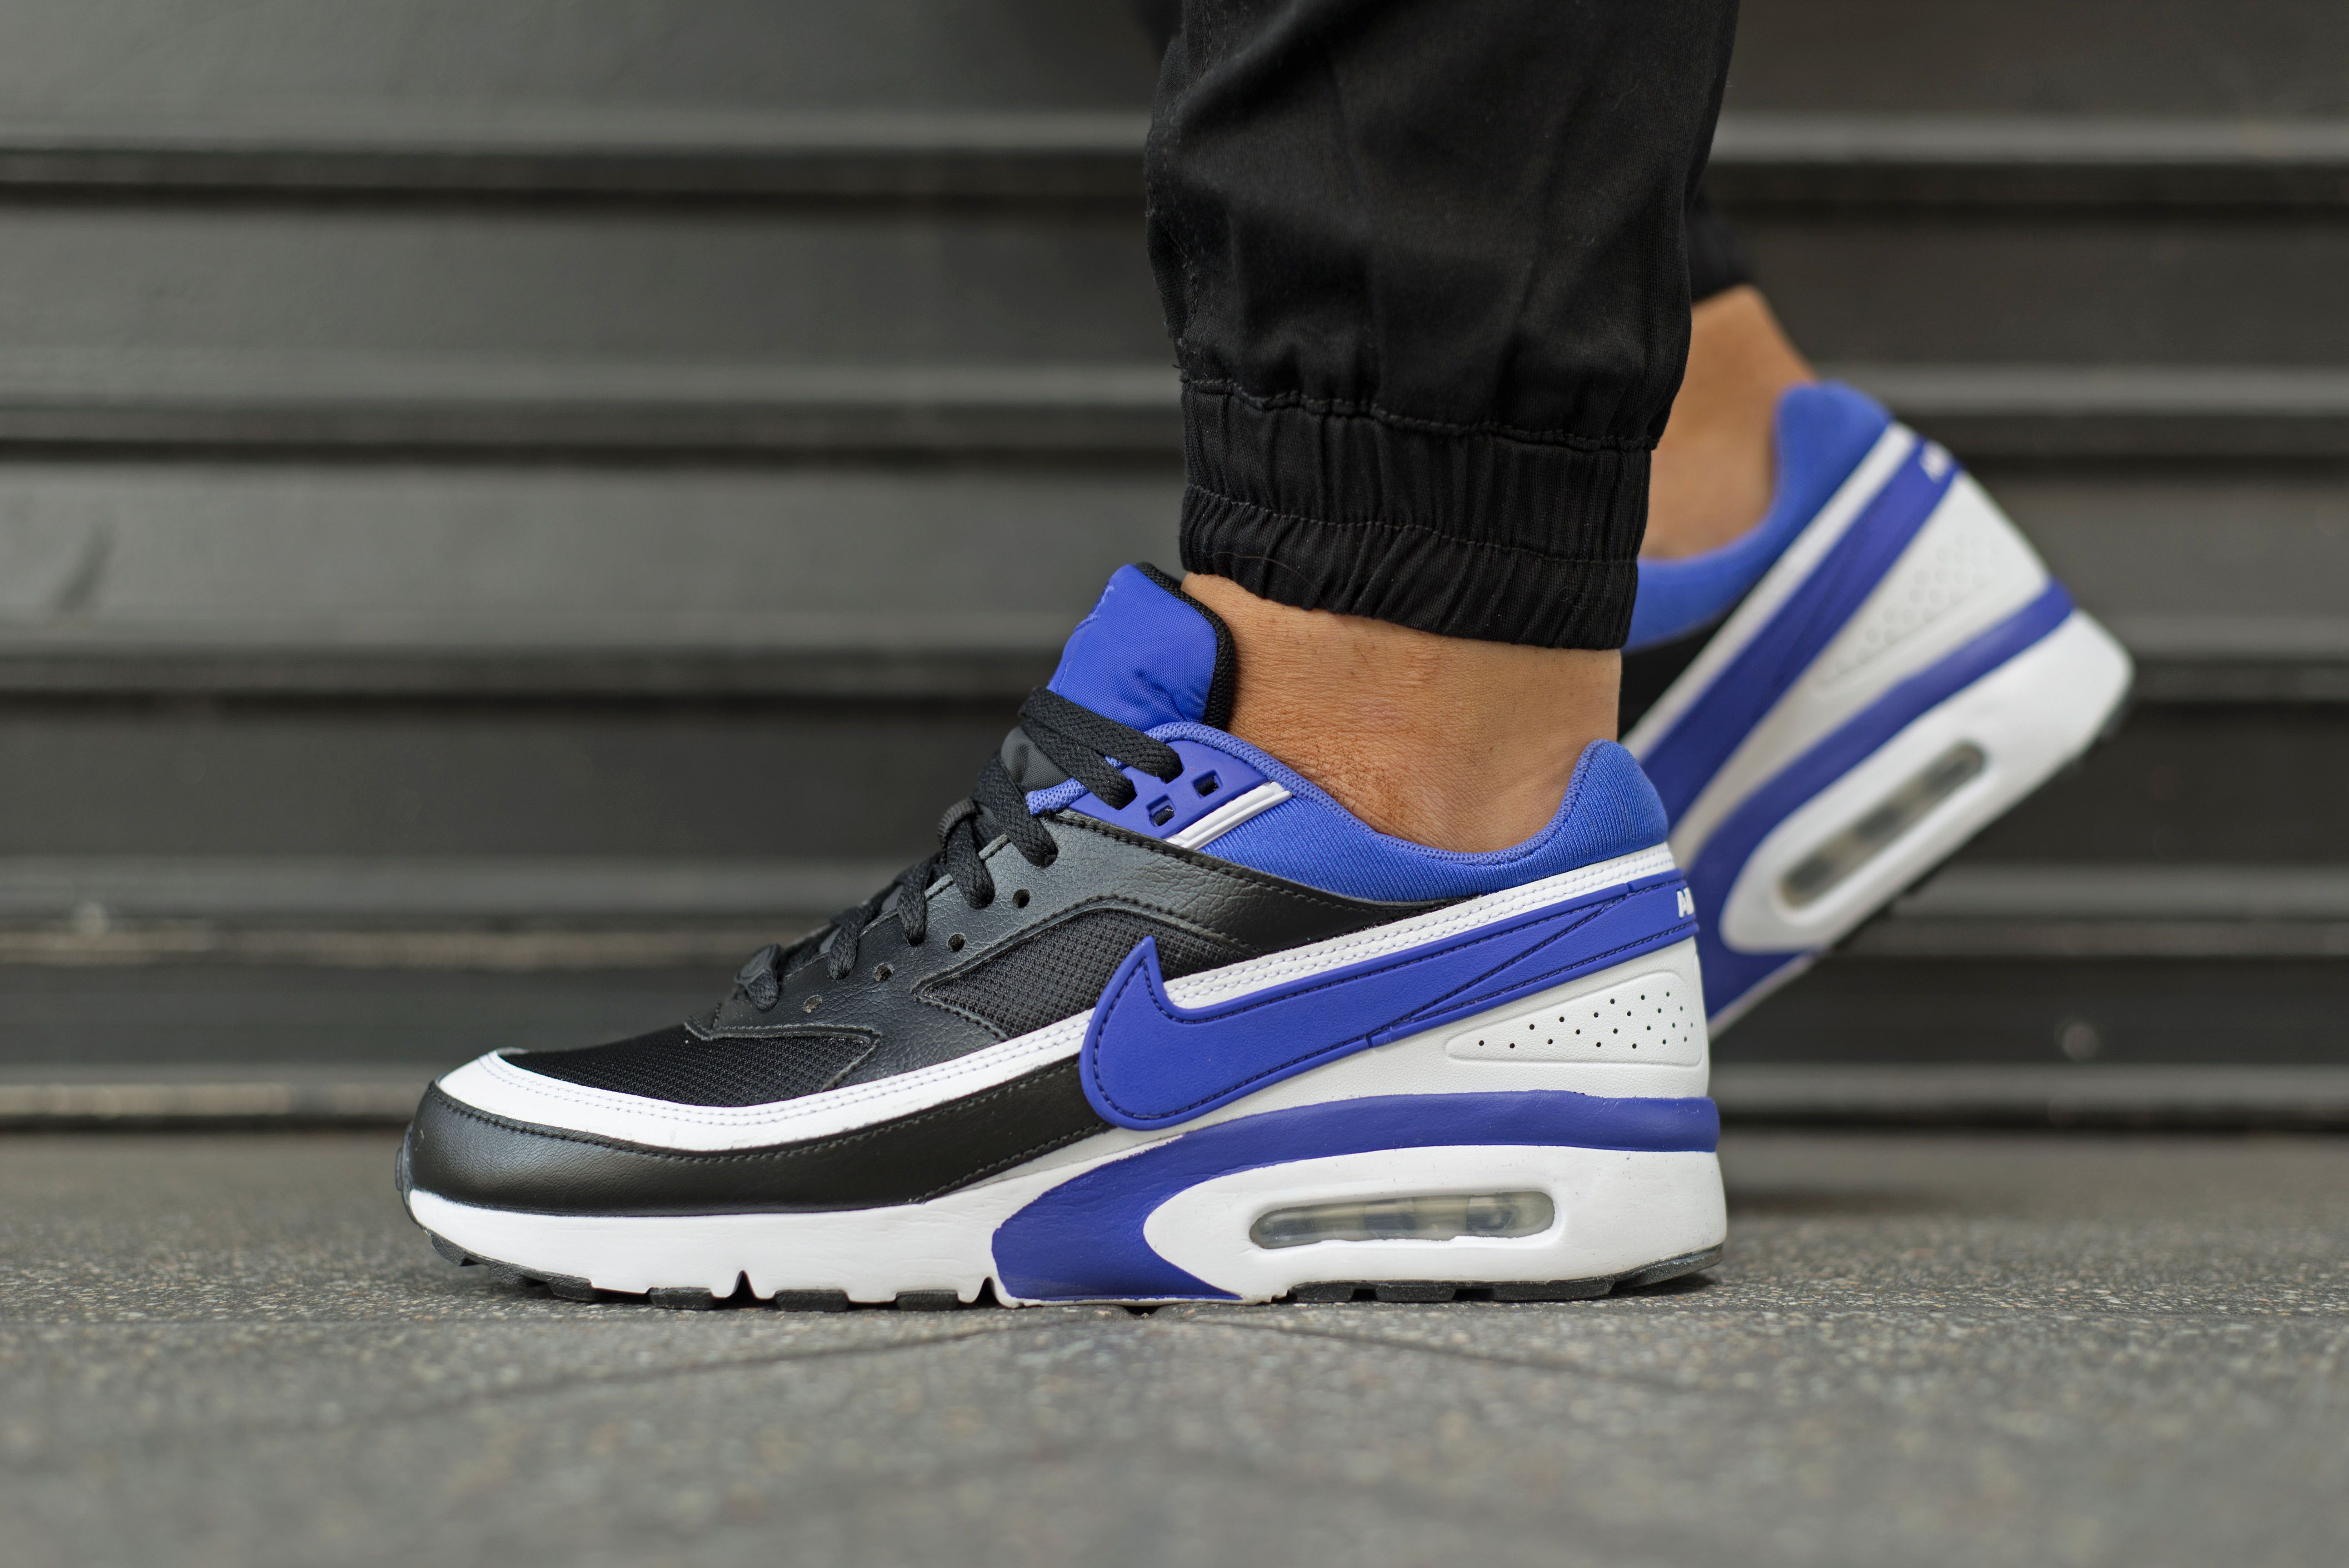 aab9094b15c NIKE AIR MAX BW OG BLACK PERSIAN VIOLET PURPLE WHITE 819522 051 ...